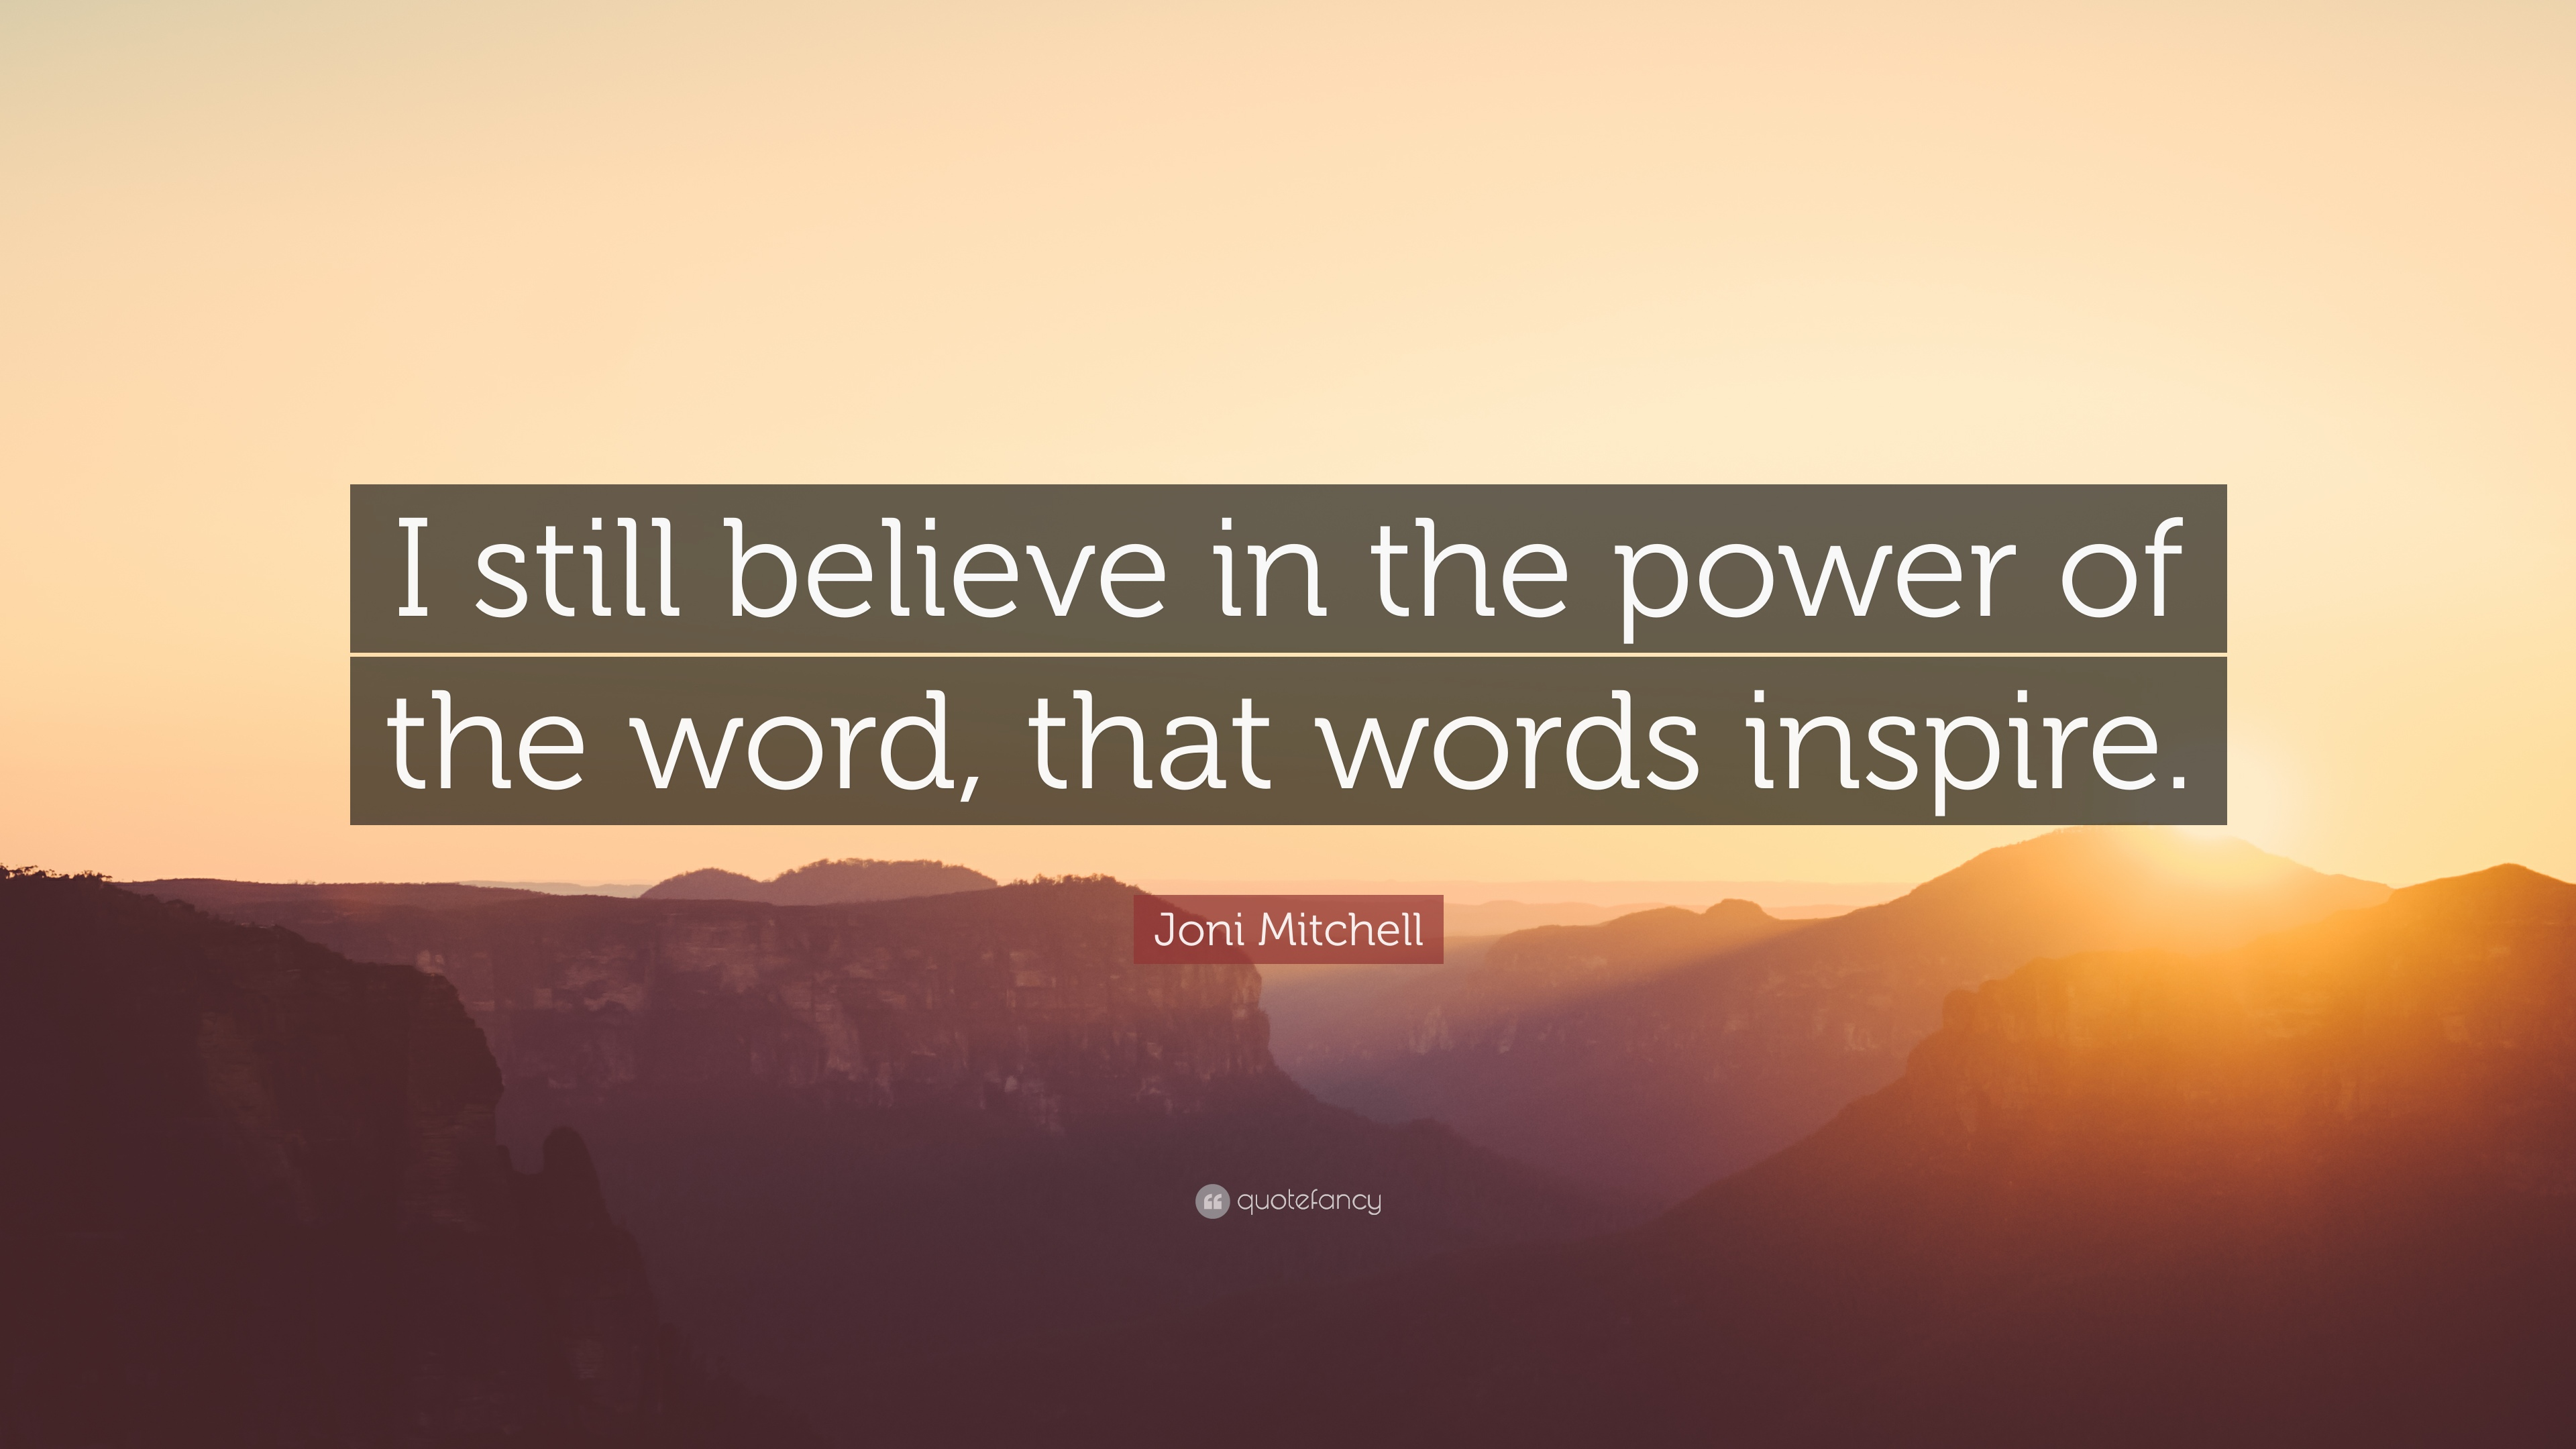 I believe in the power of words essay